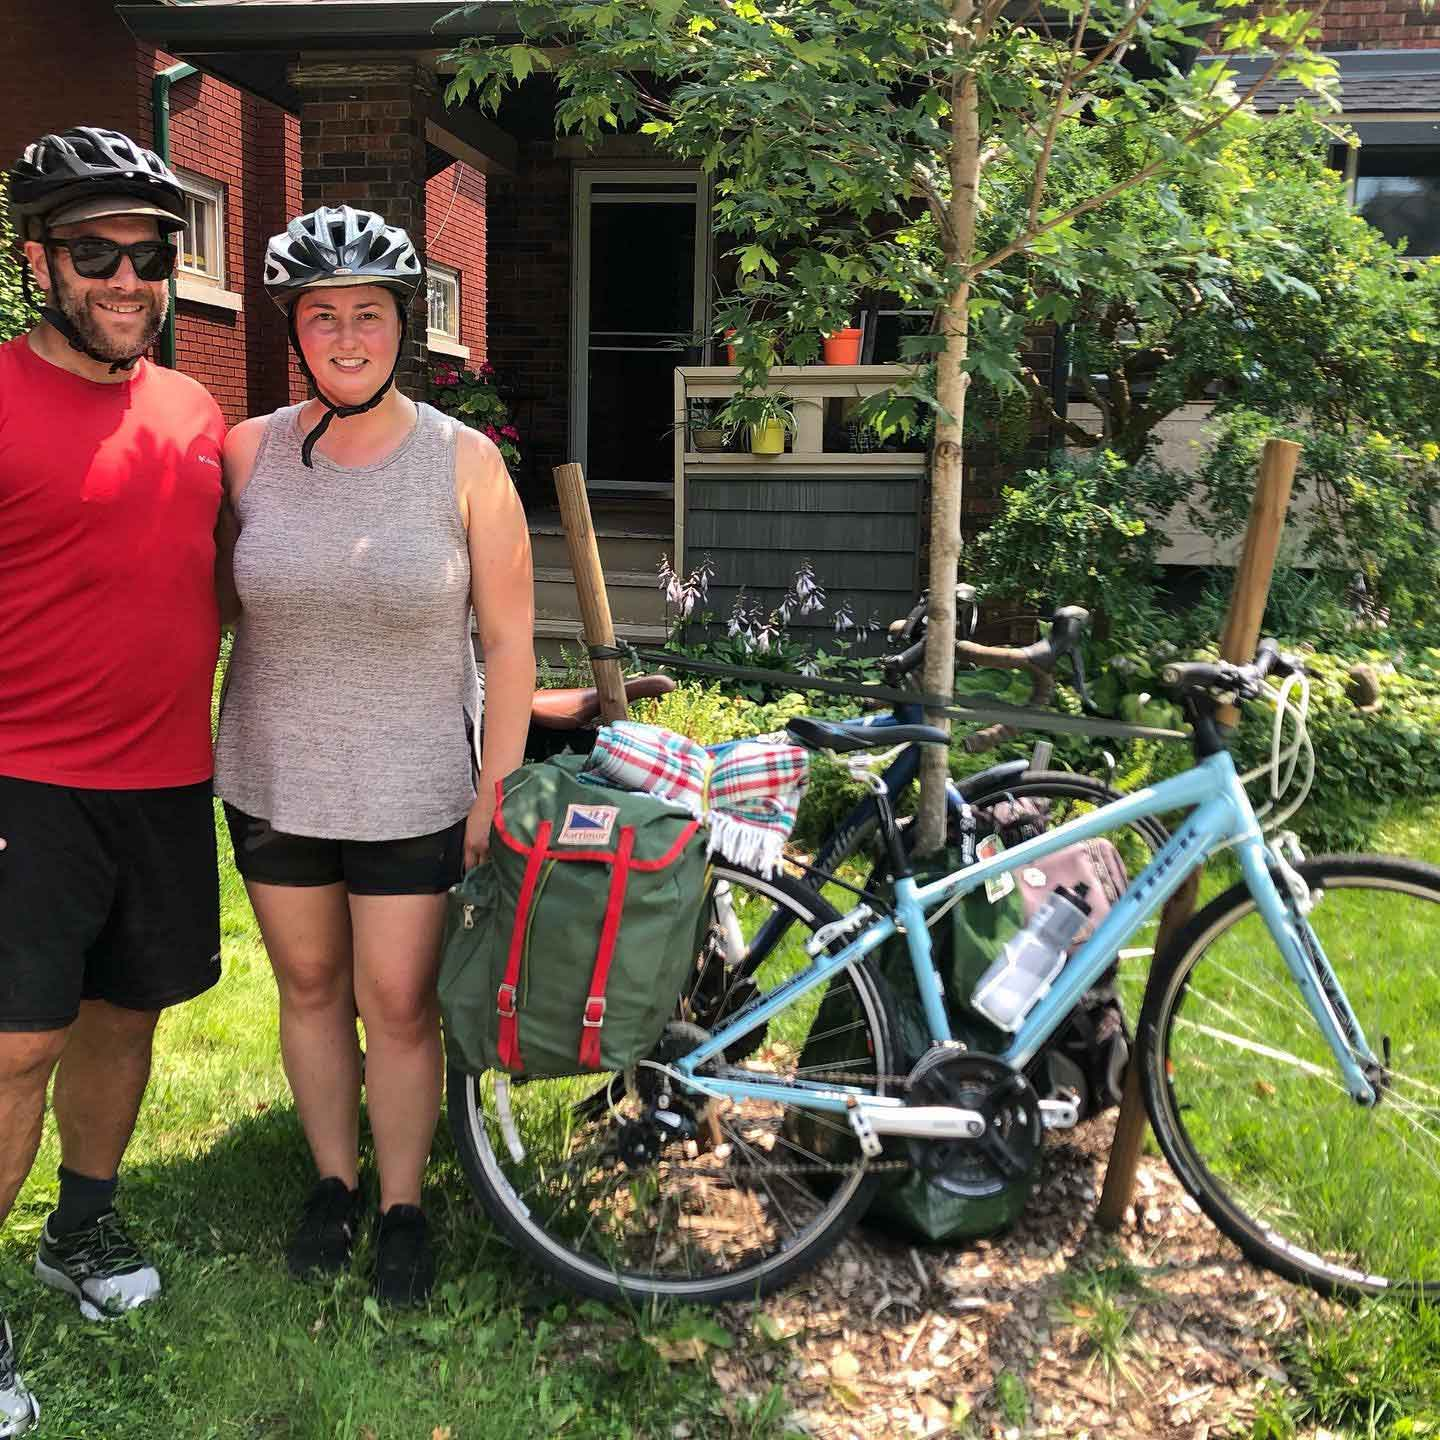 A man and a woman, both wearing bike helmets, pose with a bike that is leaning up against a tree